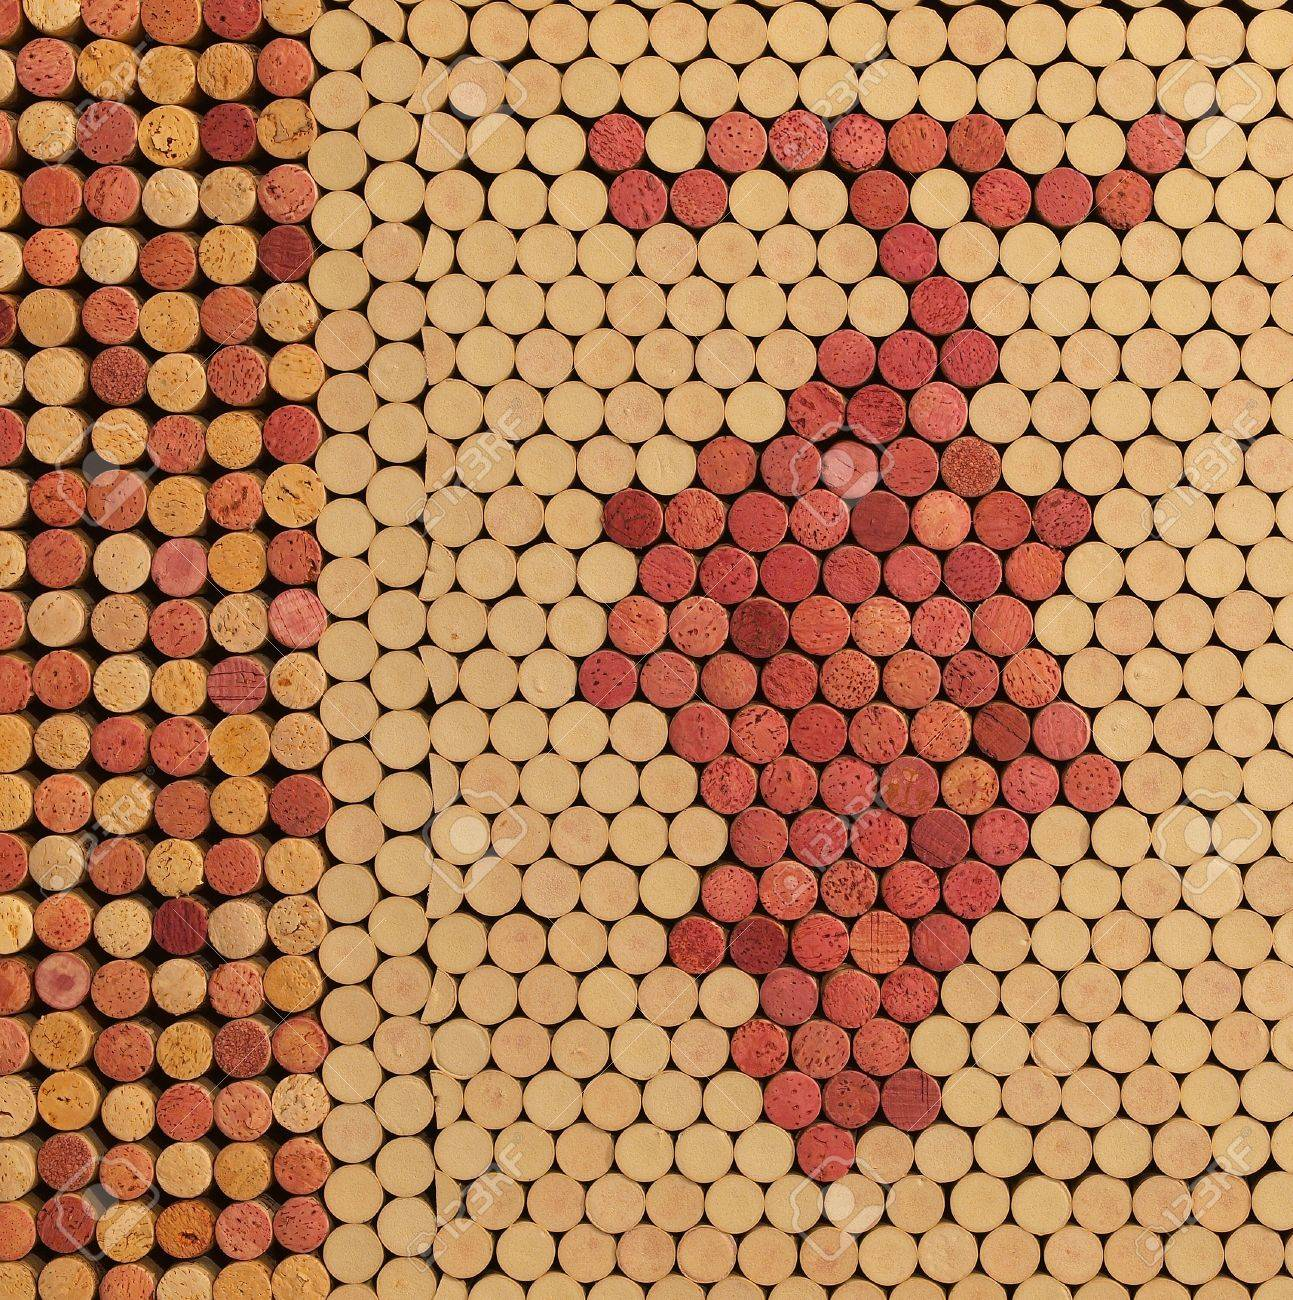 Used Wine Corks Grape Cluster Pattern for Background Stock Photo - 14450245